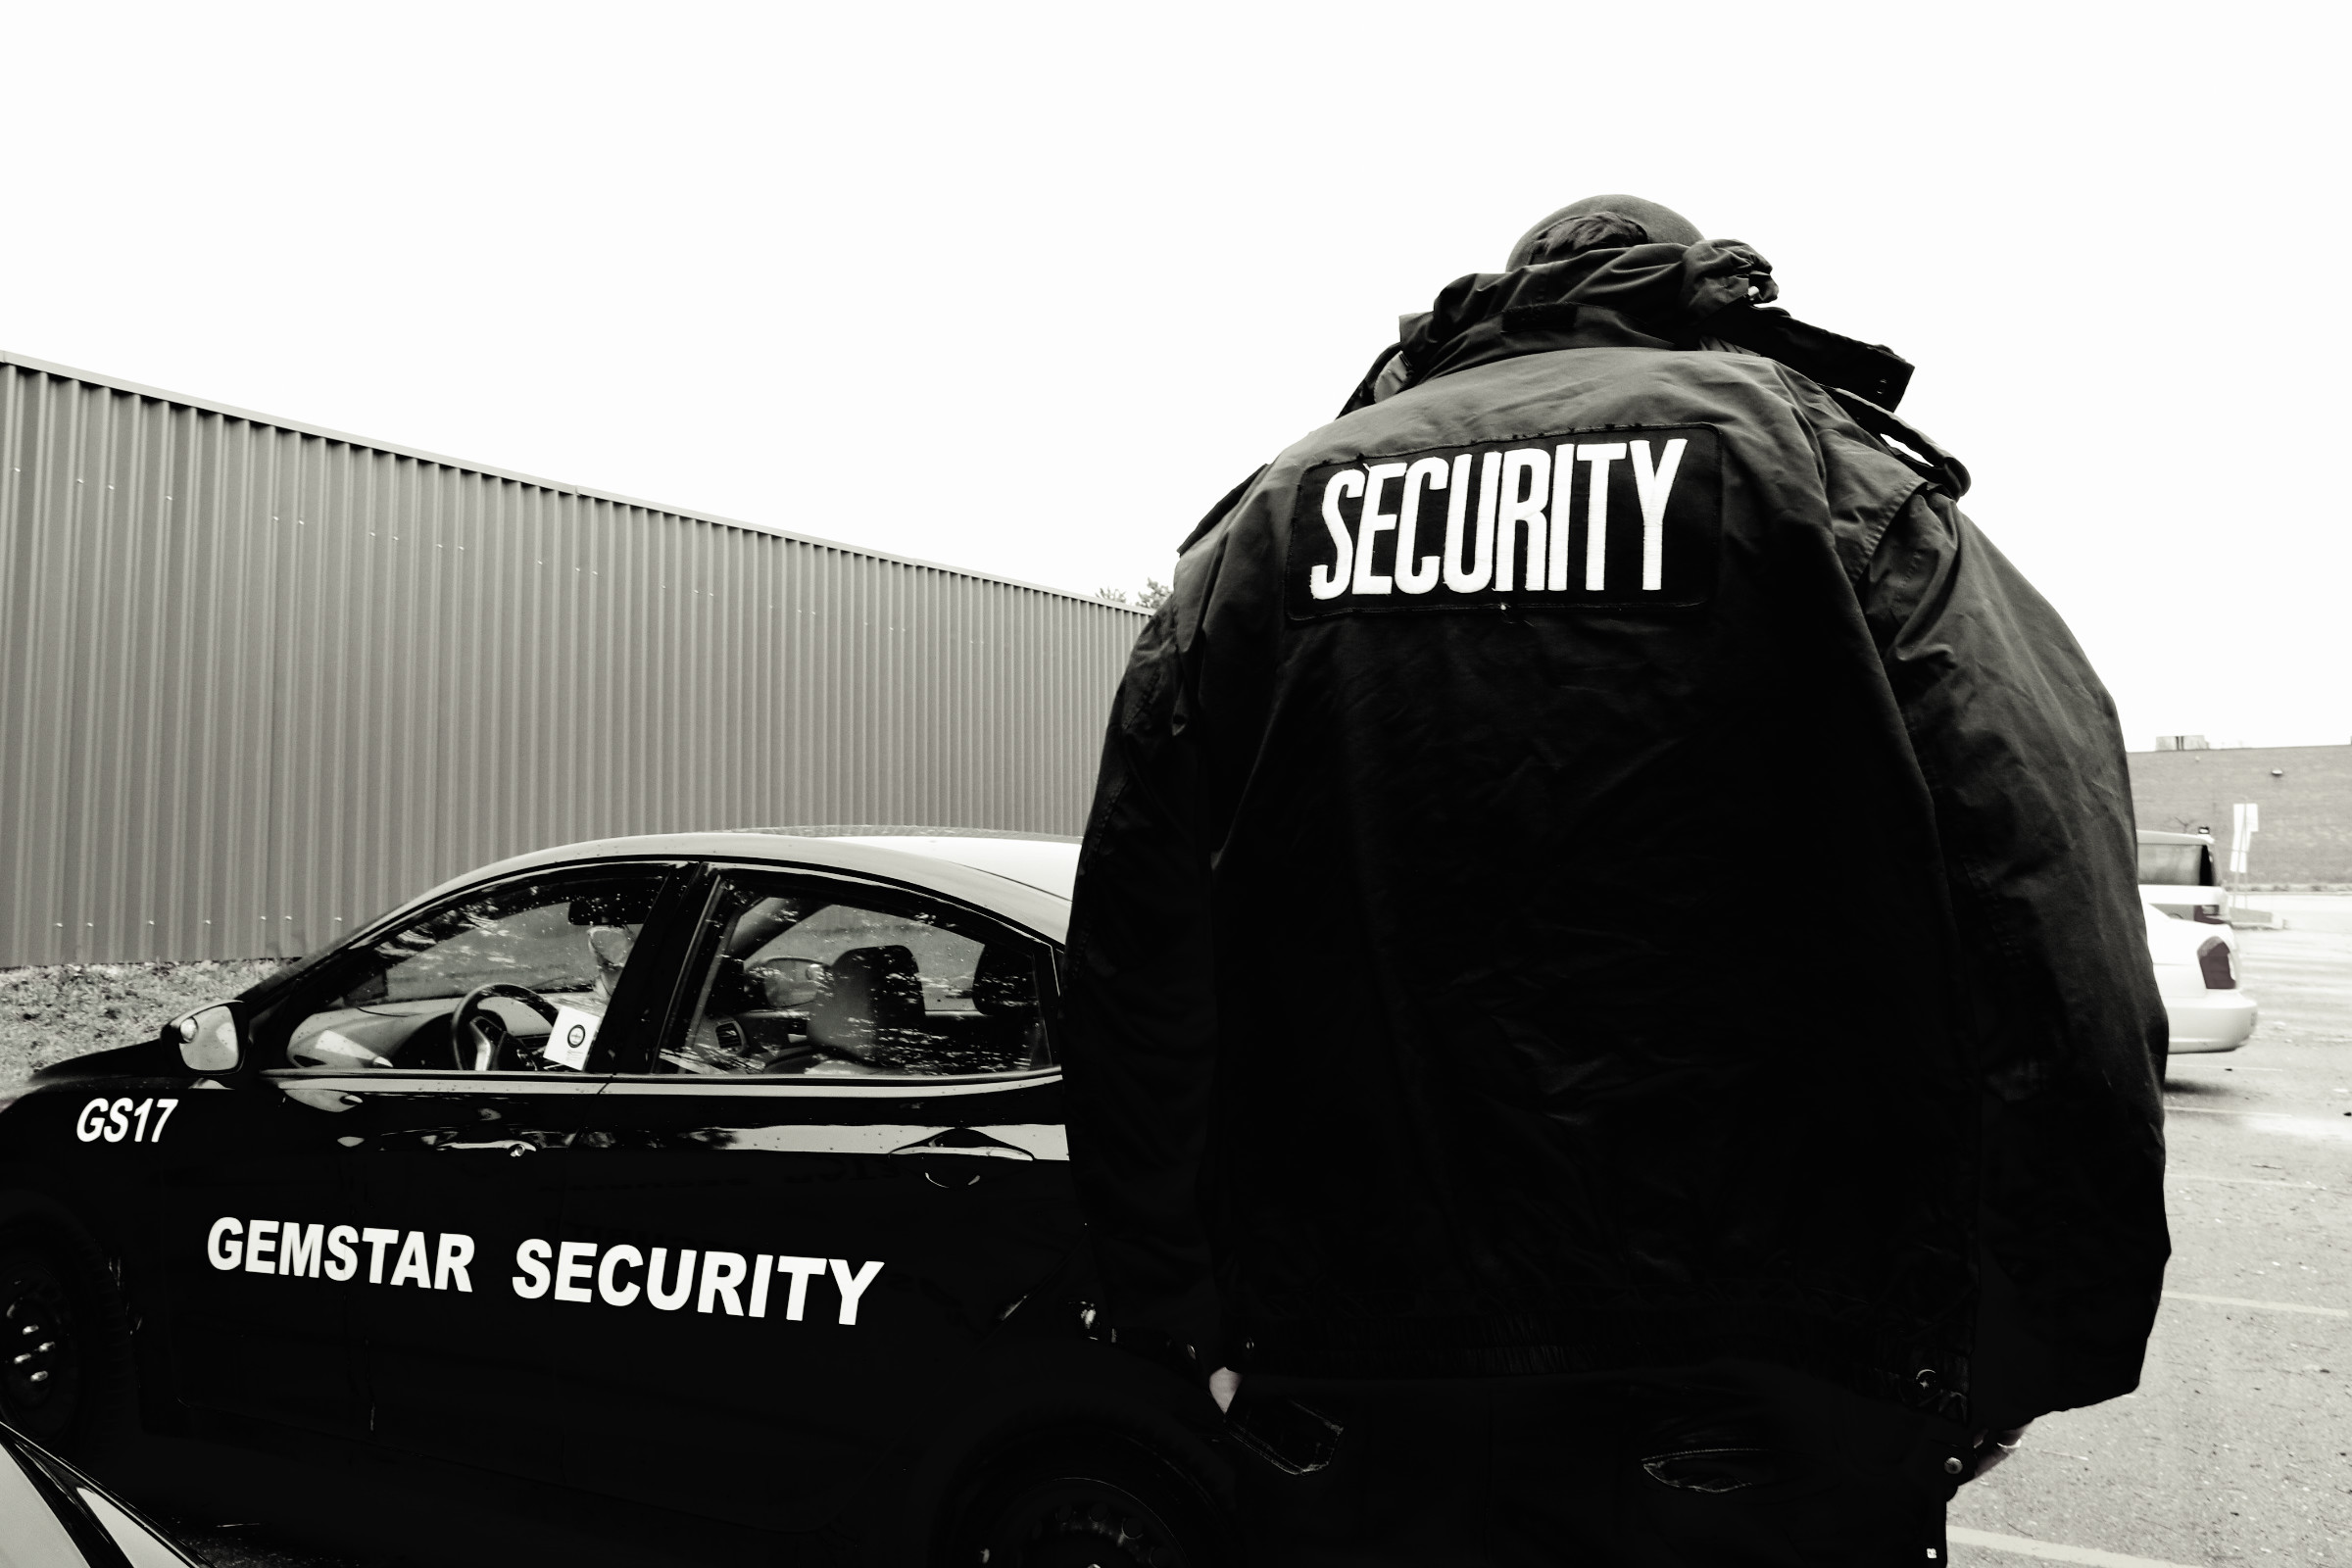 Gemstar Security 14.jpg